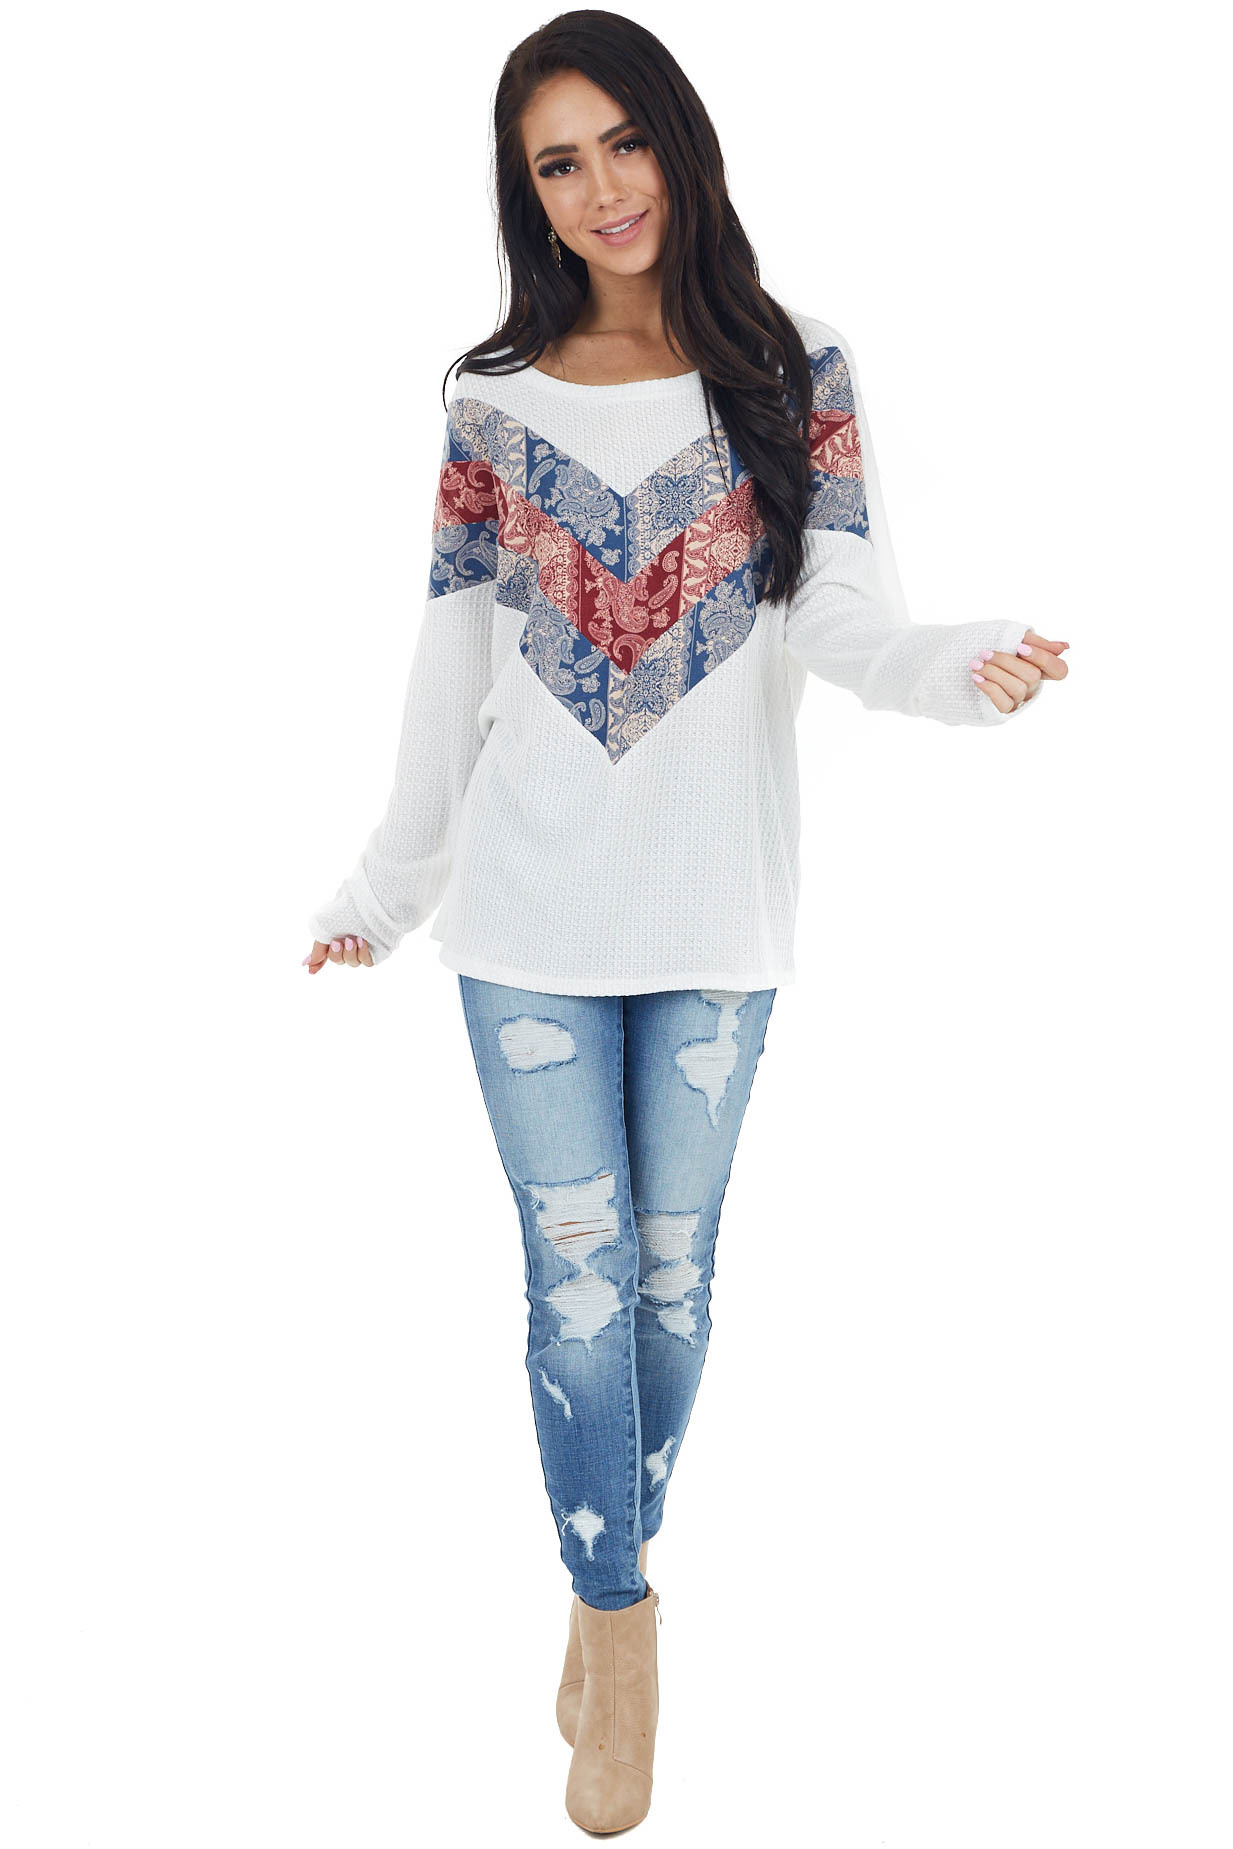 Off White Long Sleeve Top with Paisley Print Colorblock